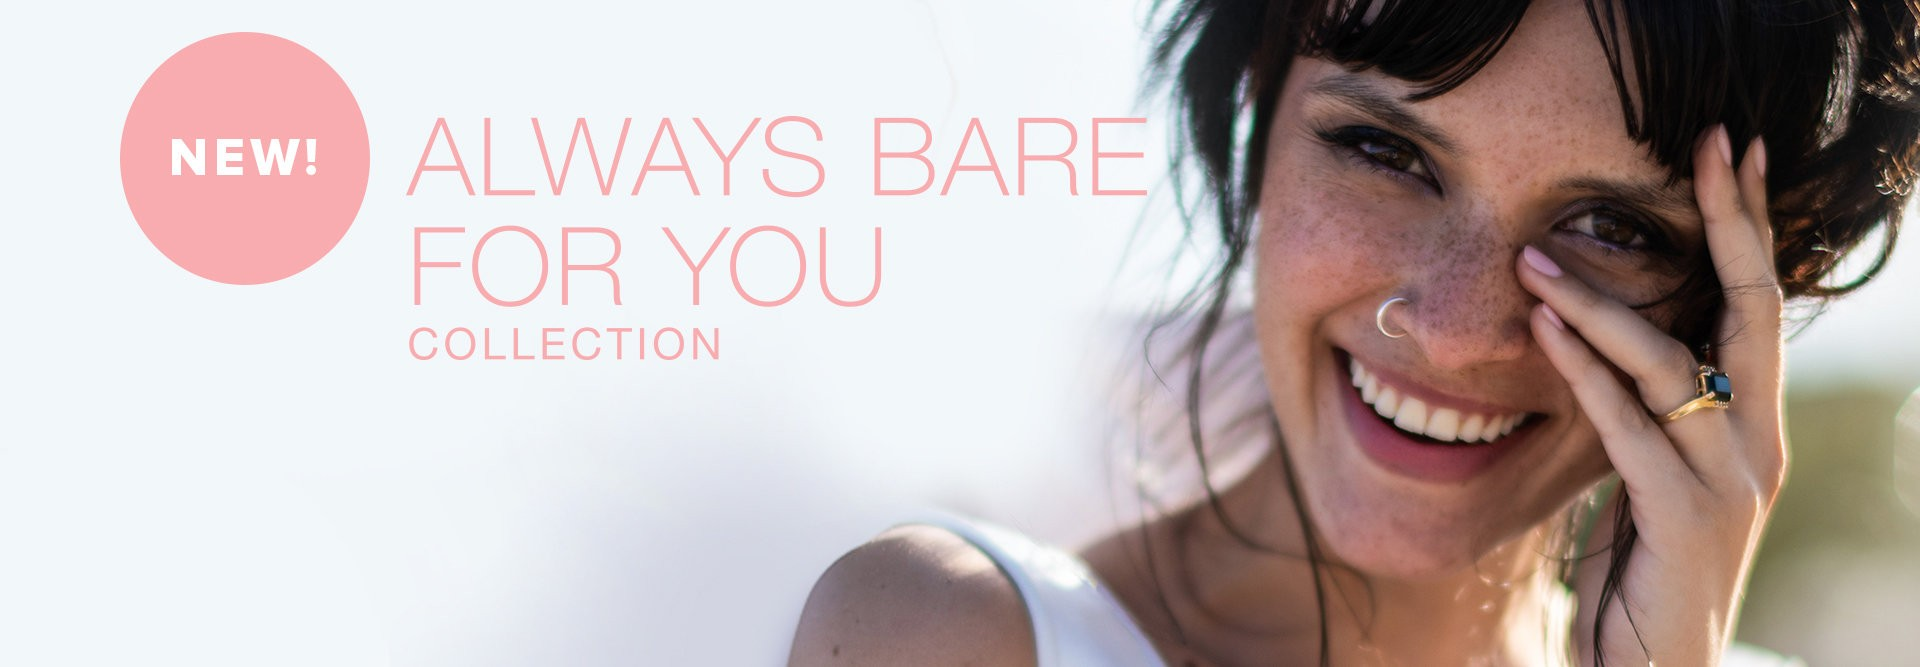 Always Bare for You